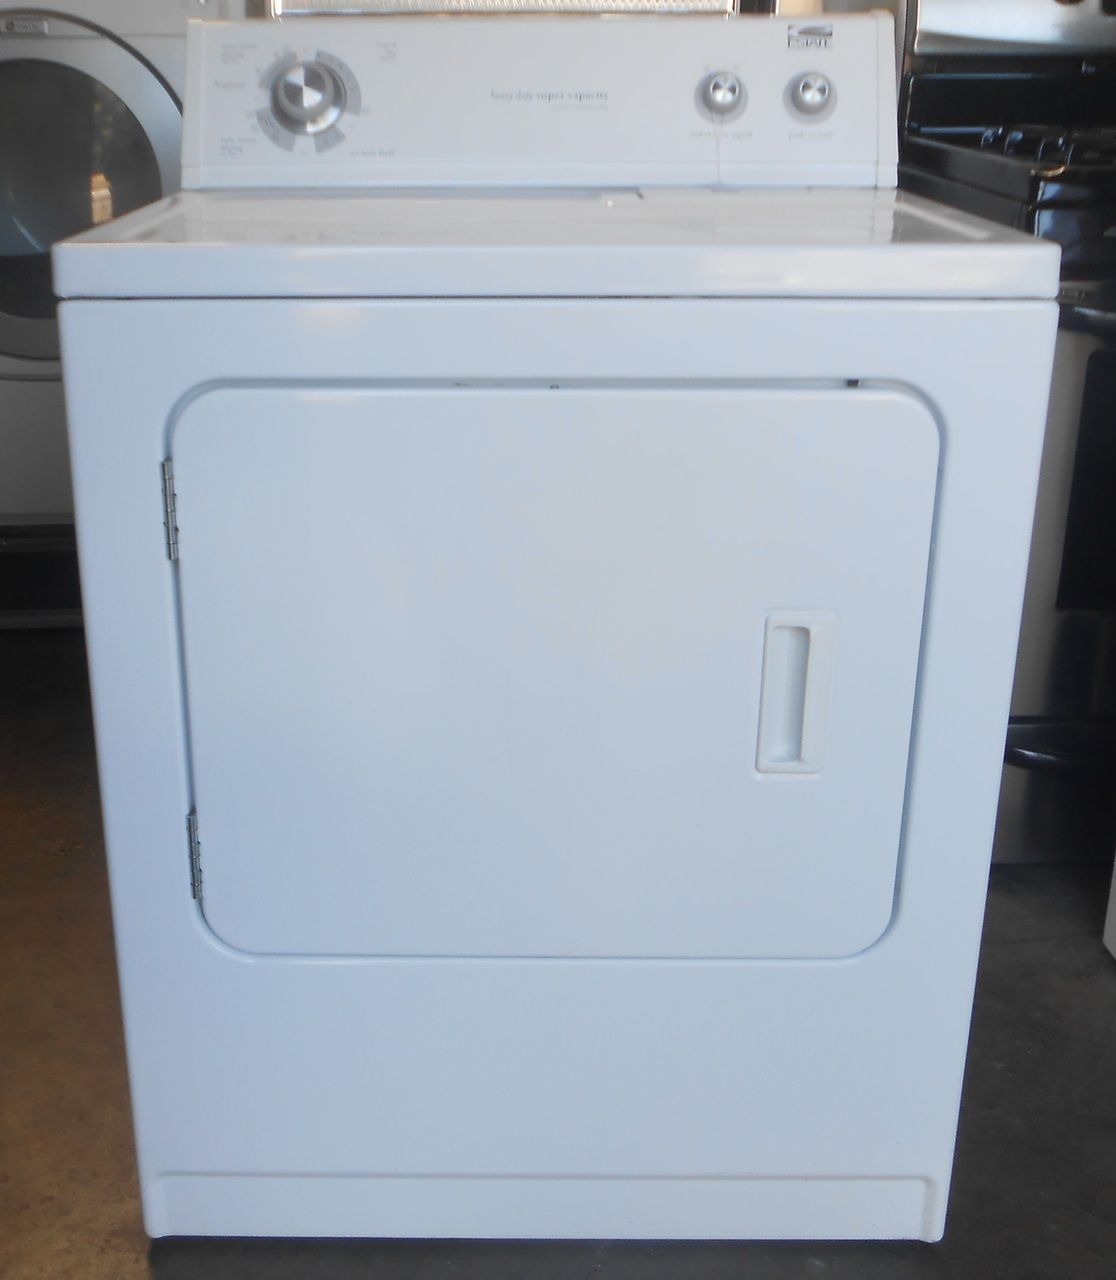 Appliance City - WHIRLPOOL ESTATE ELECTRIC DRYER, $224.00 (http ...